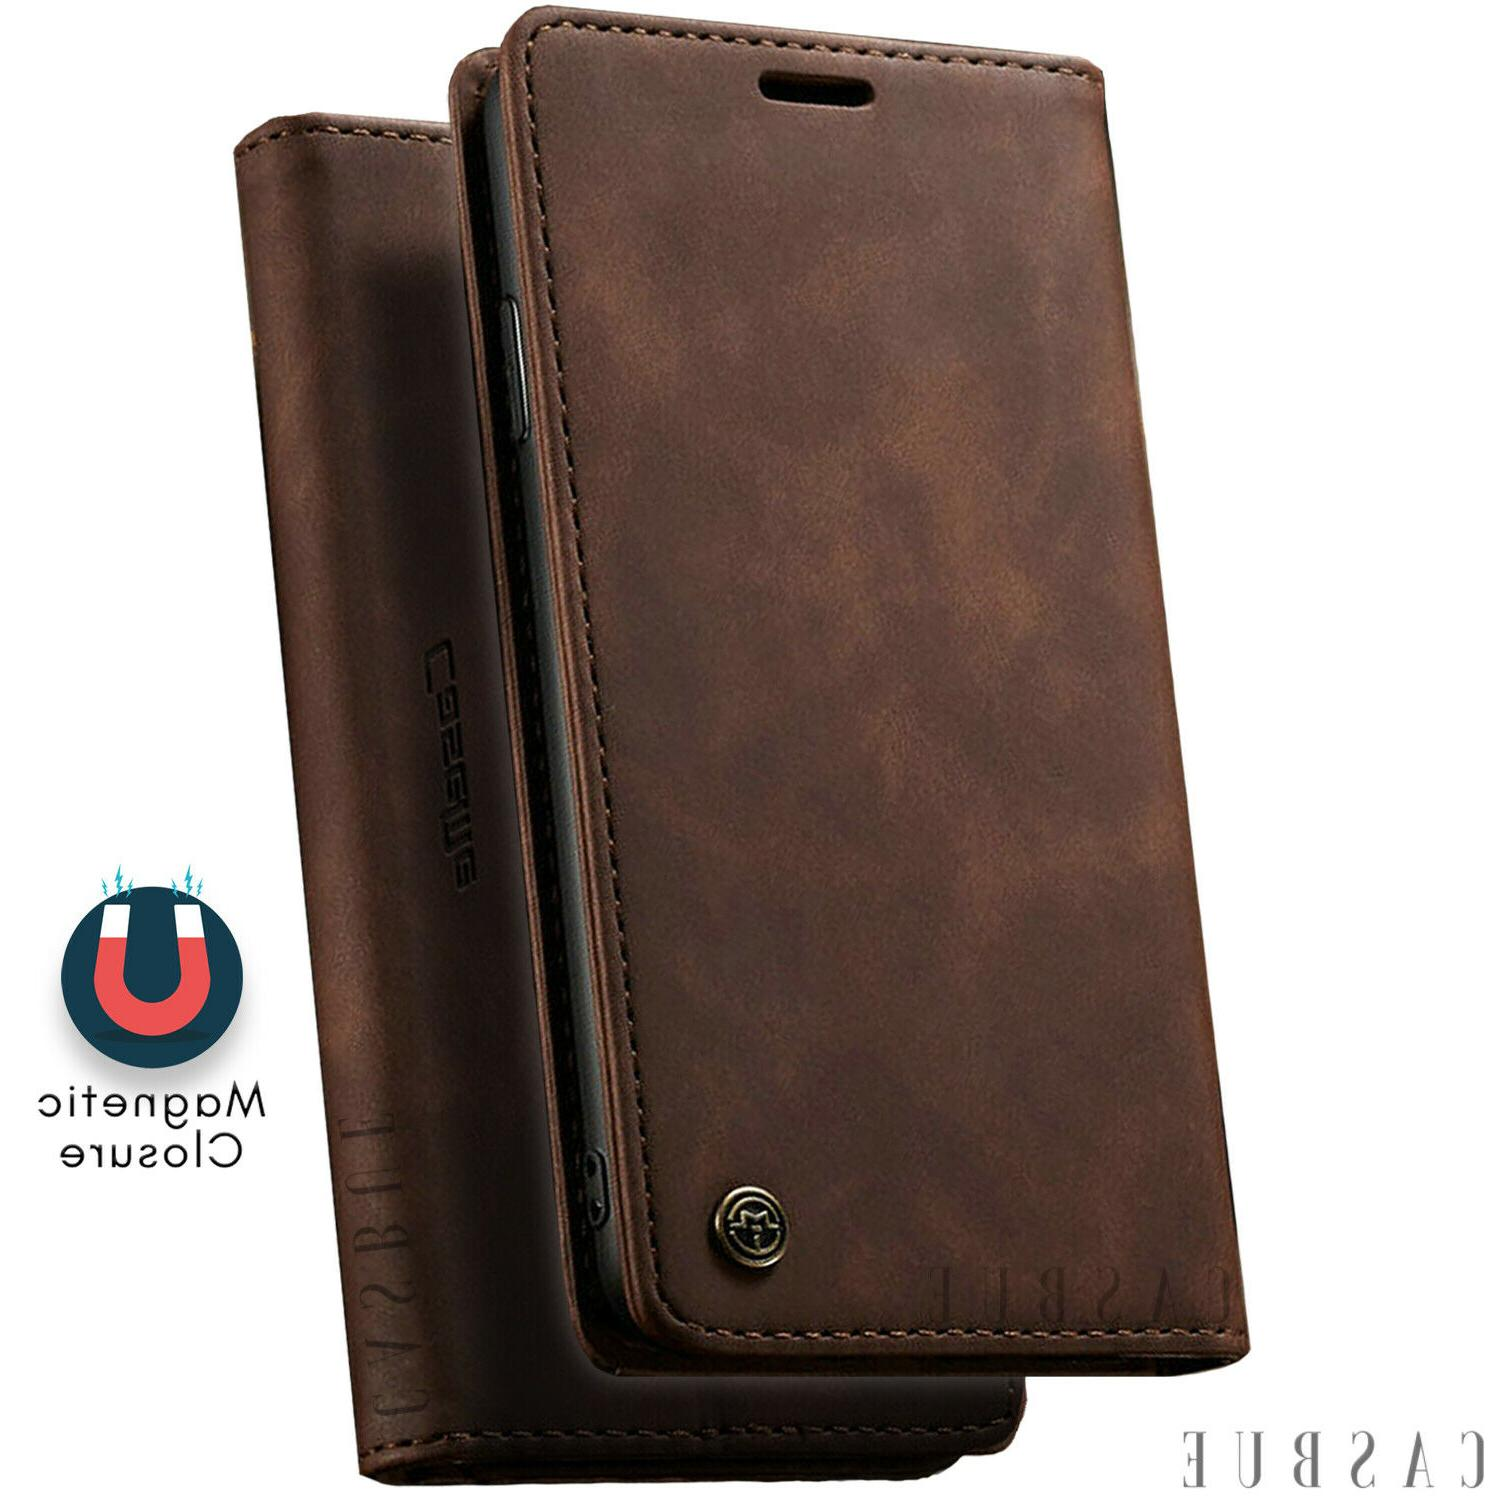 Magnetic Leather For iPhone Pro Max